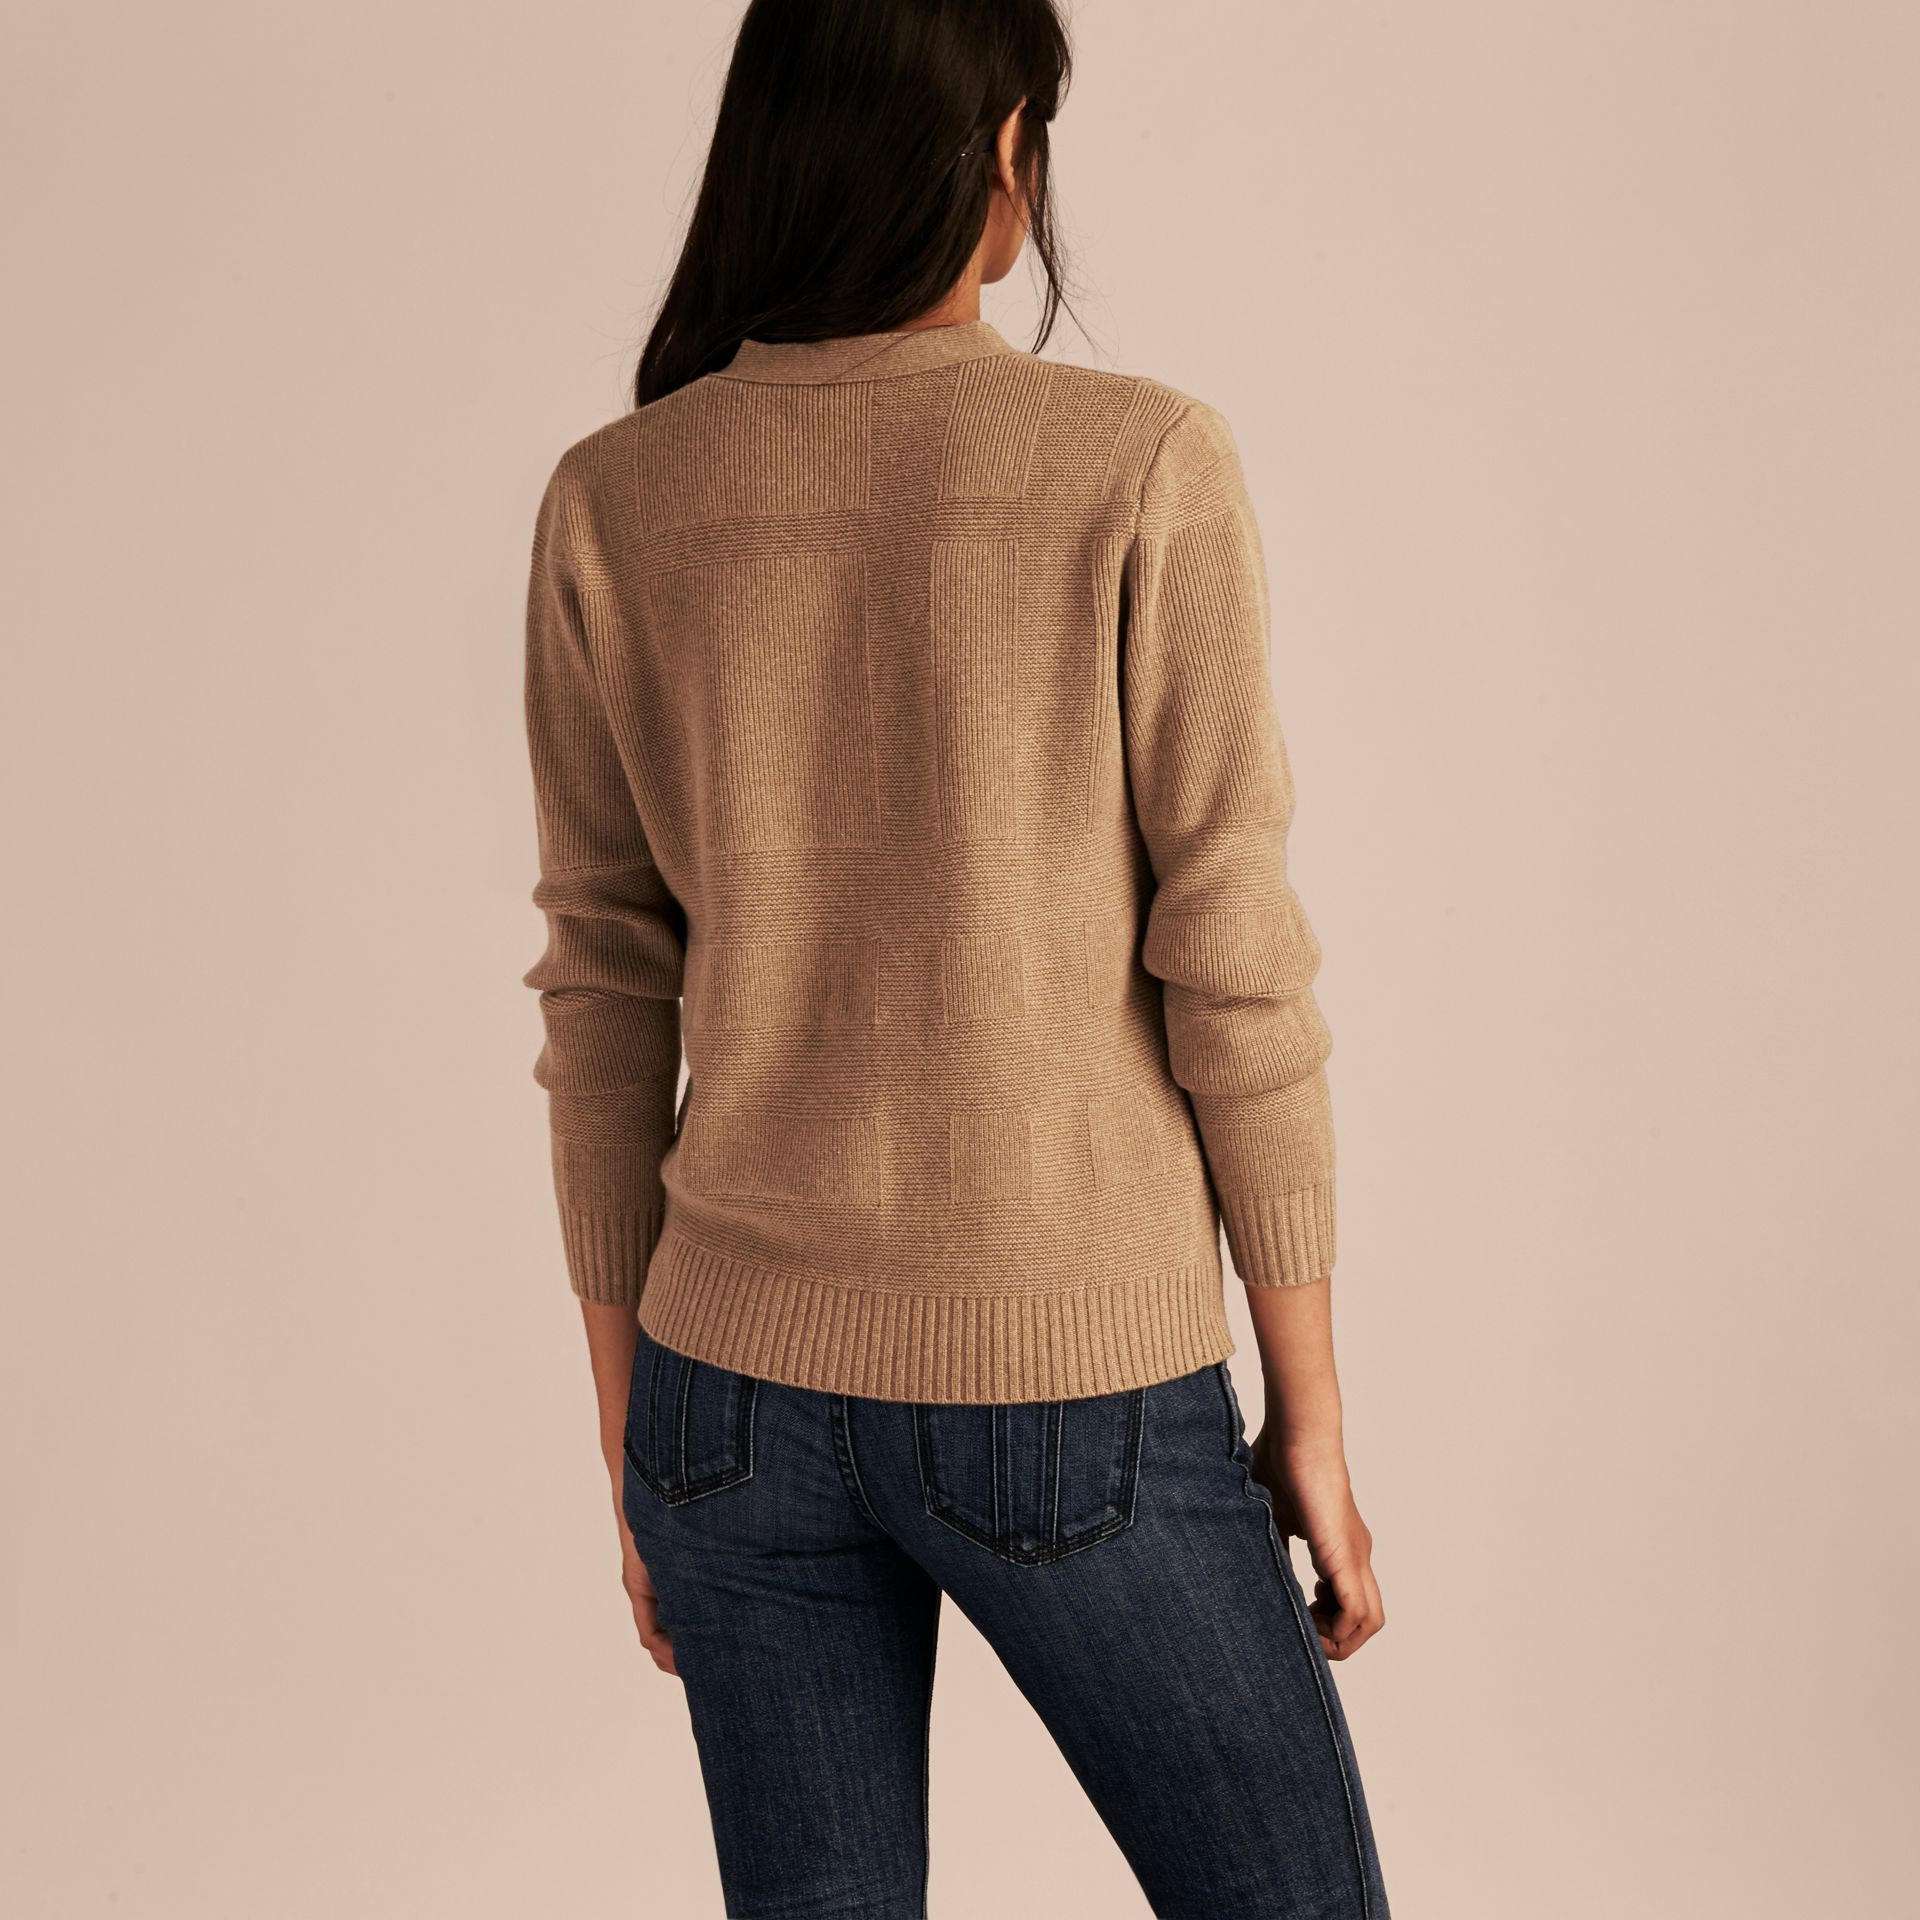 Check-knit Wool Cashmere Cardigan - gallery image 3